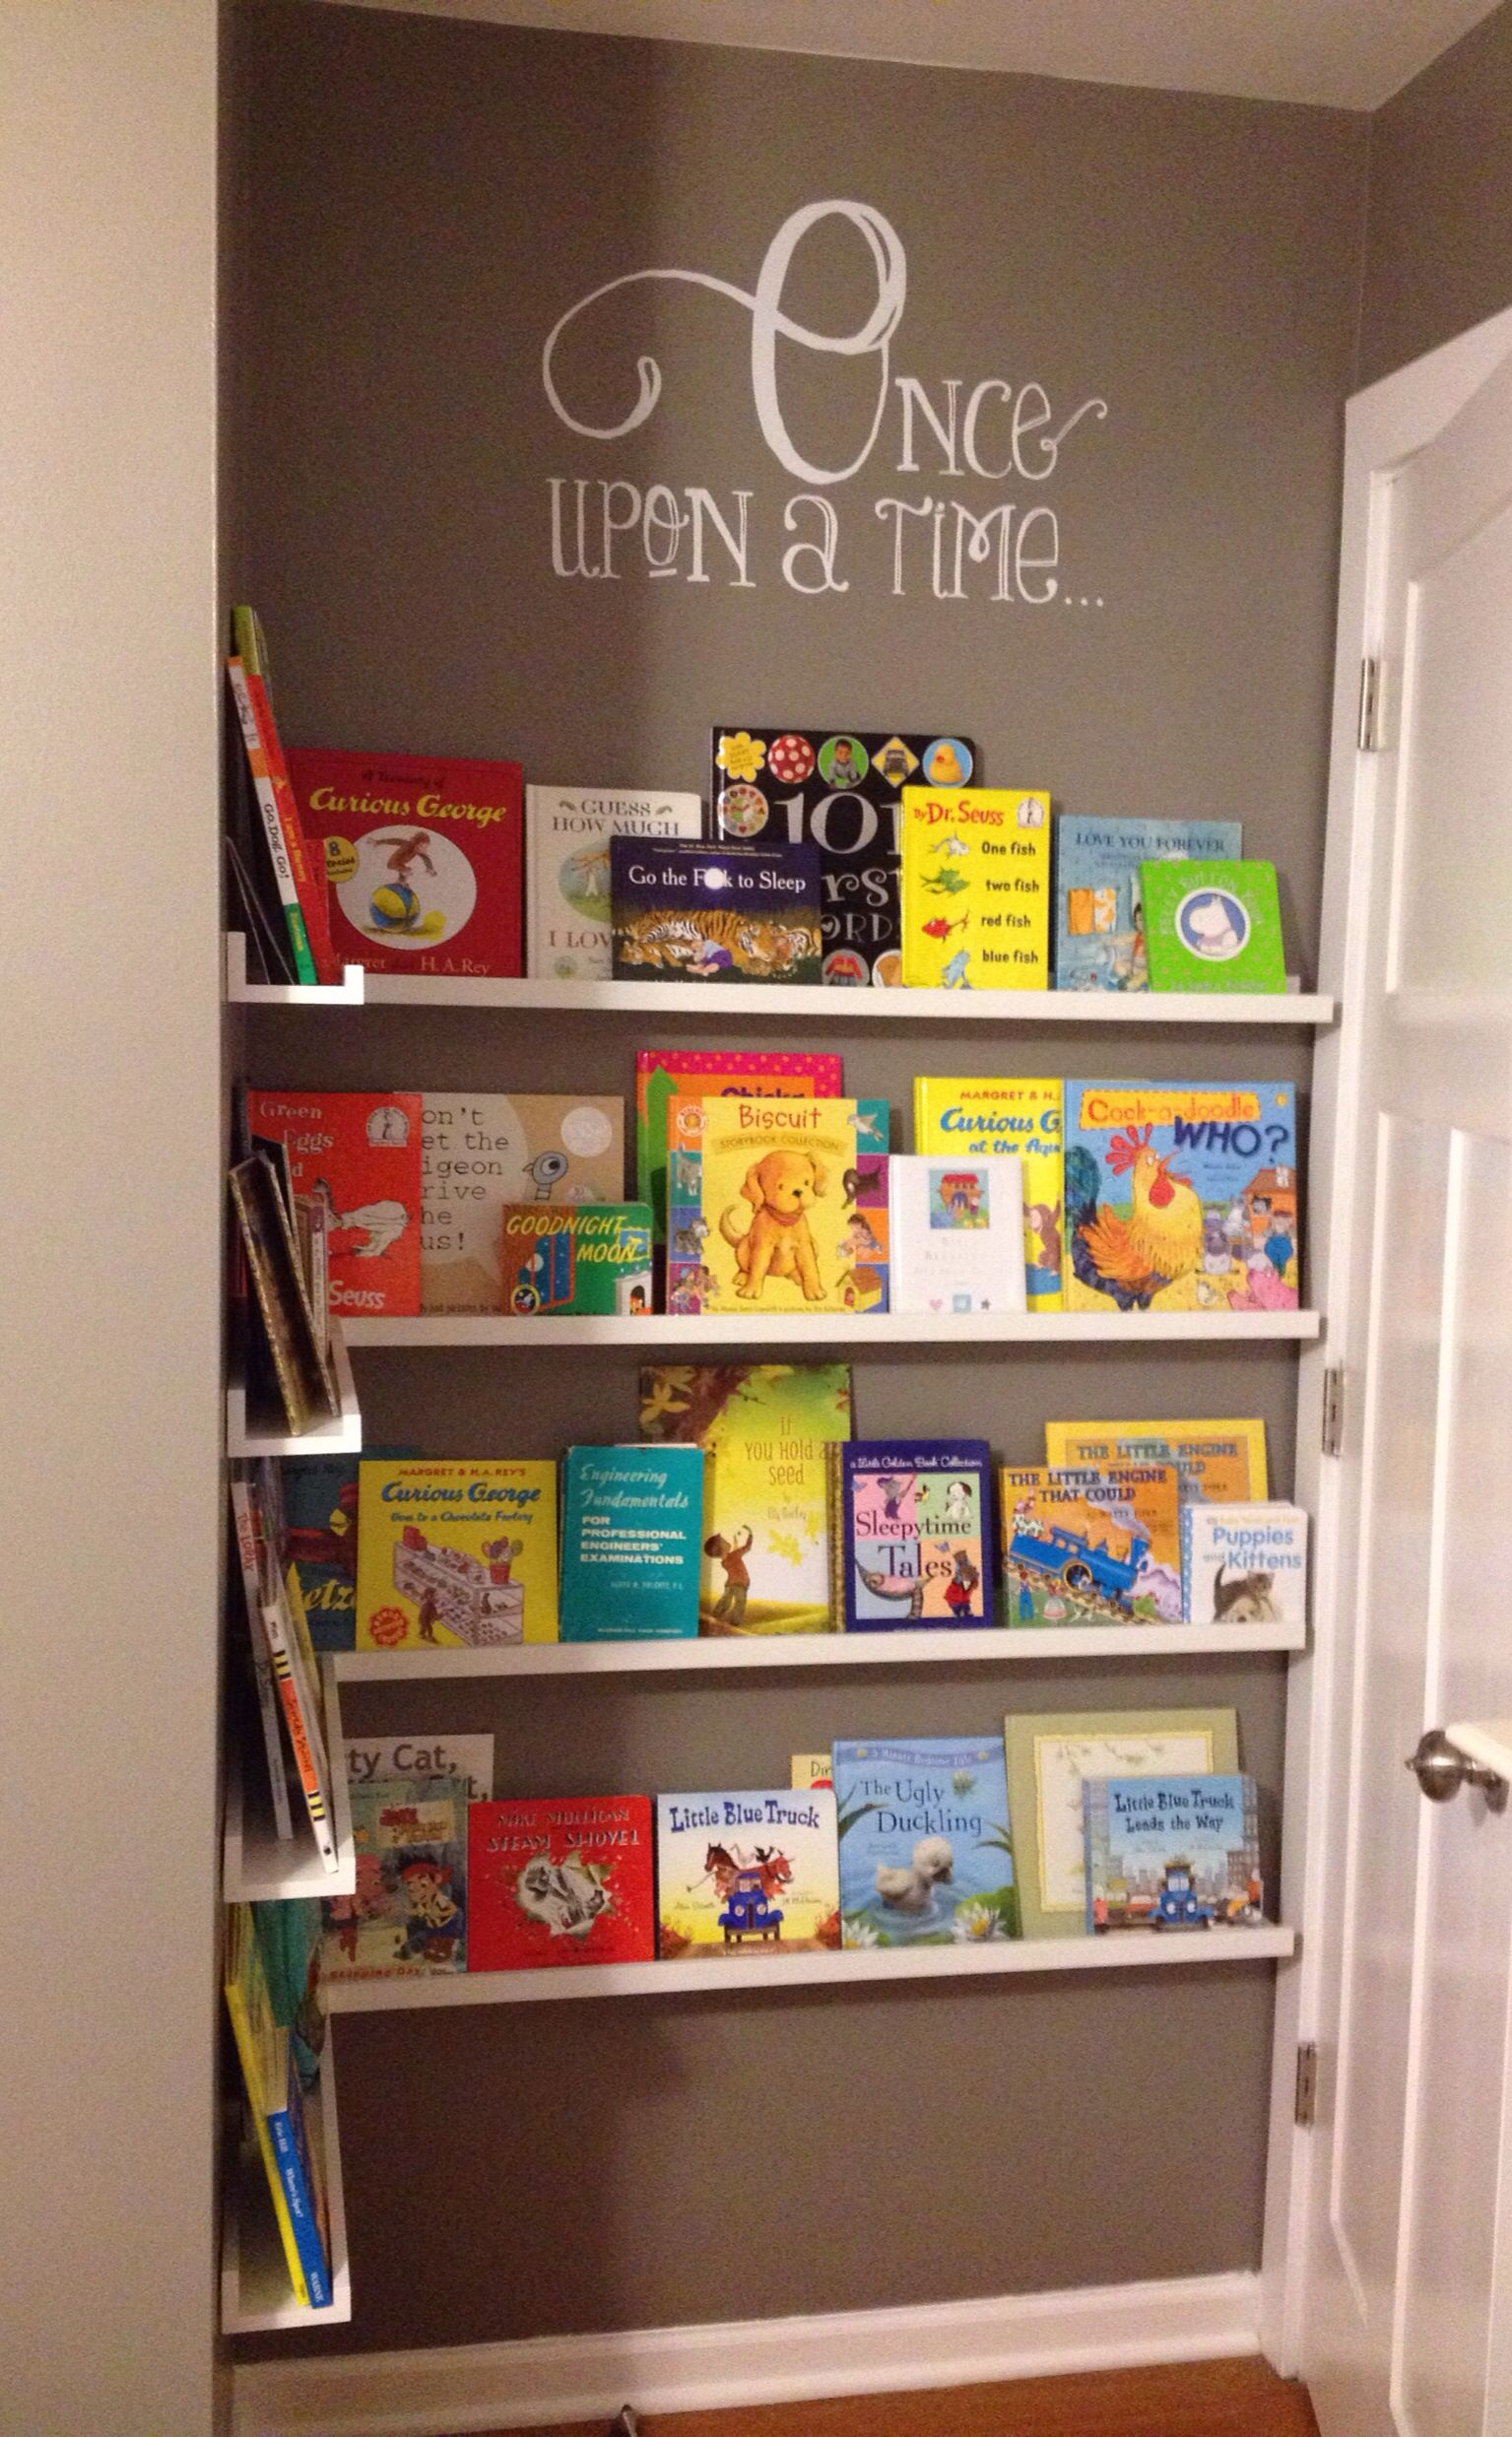 Book nook in other wise unused space. Cheap photo ledges from IKEA + etsy wall decal = custom nursery library Etsy shop: TweetHeartWallArt